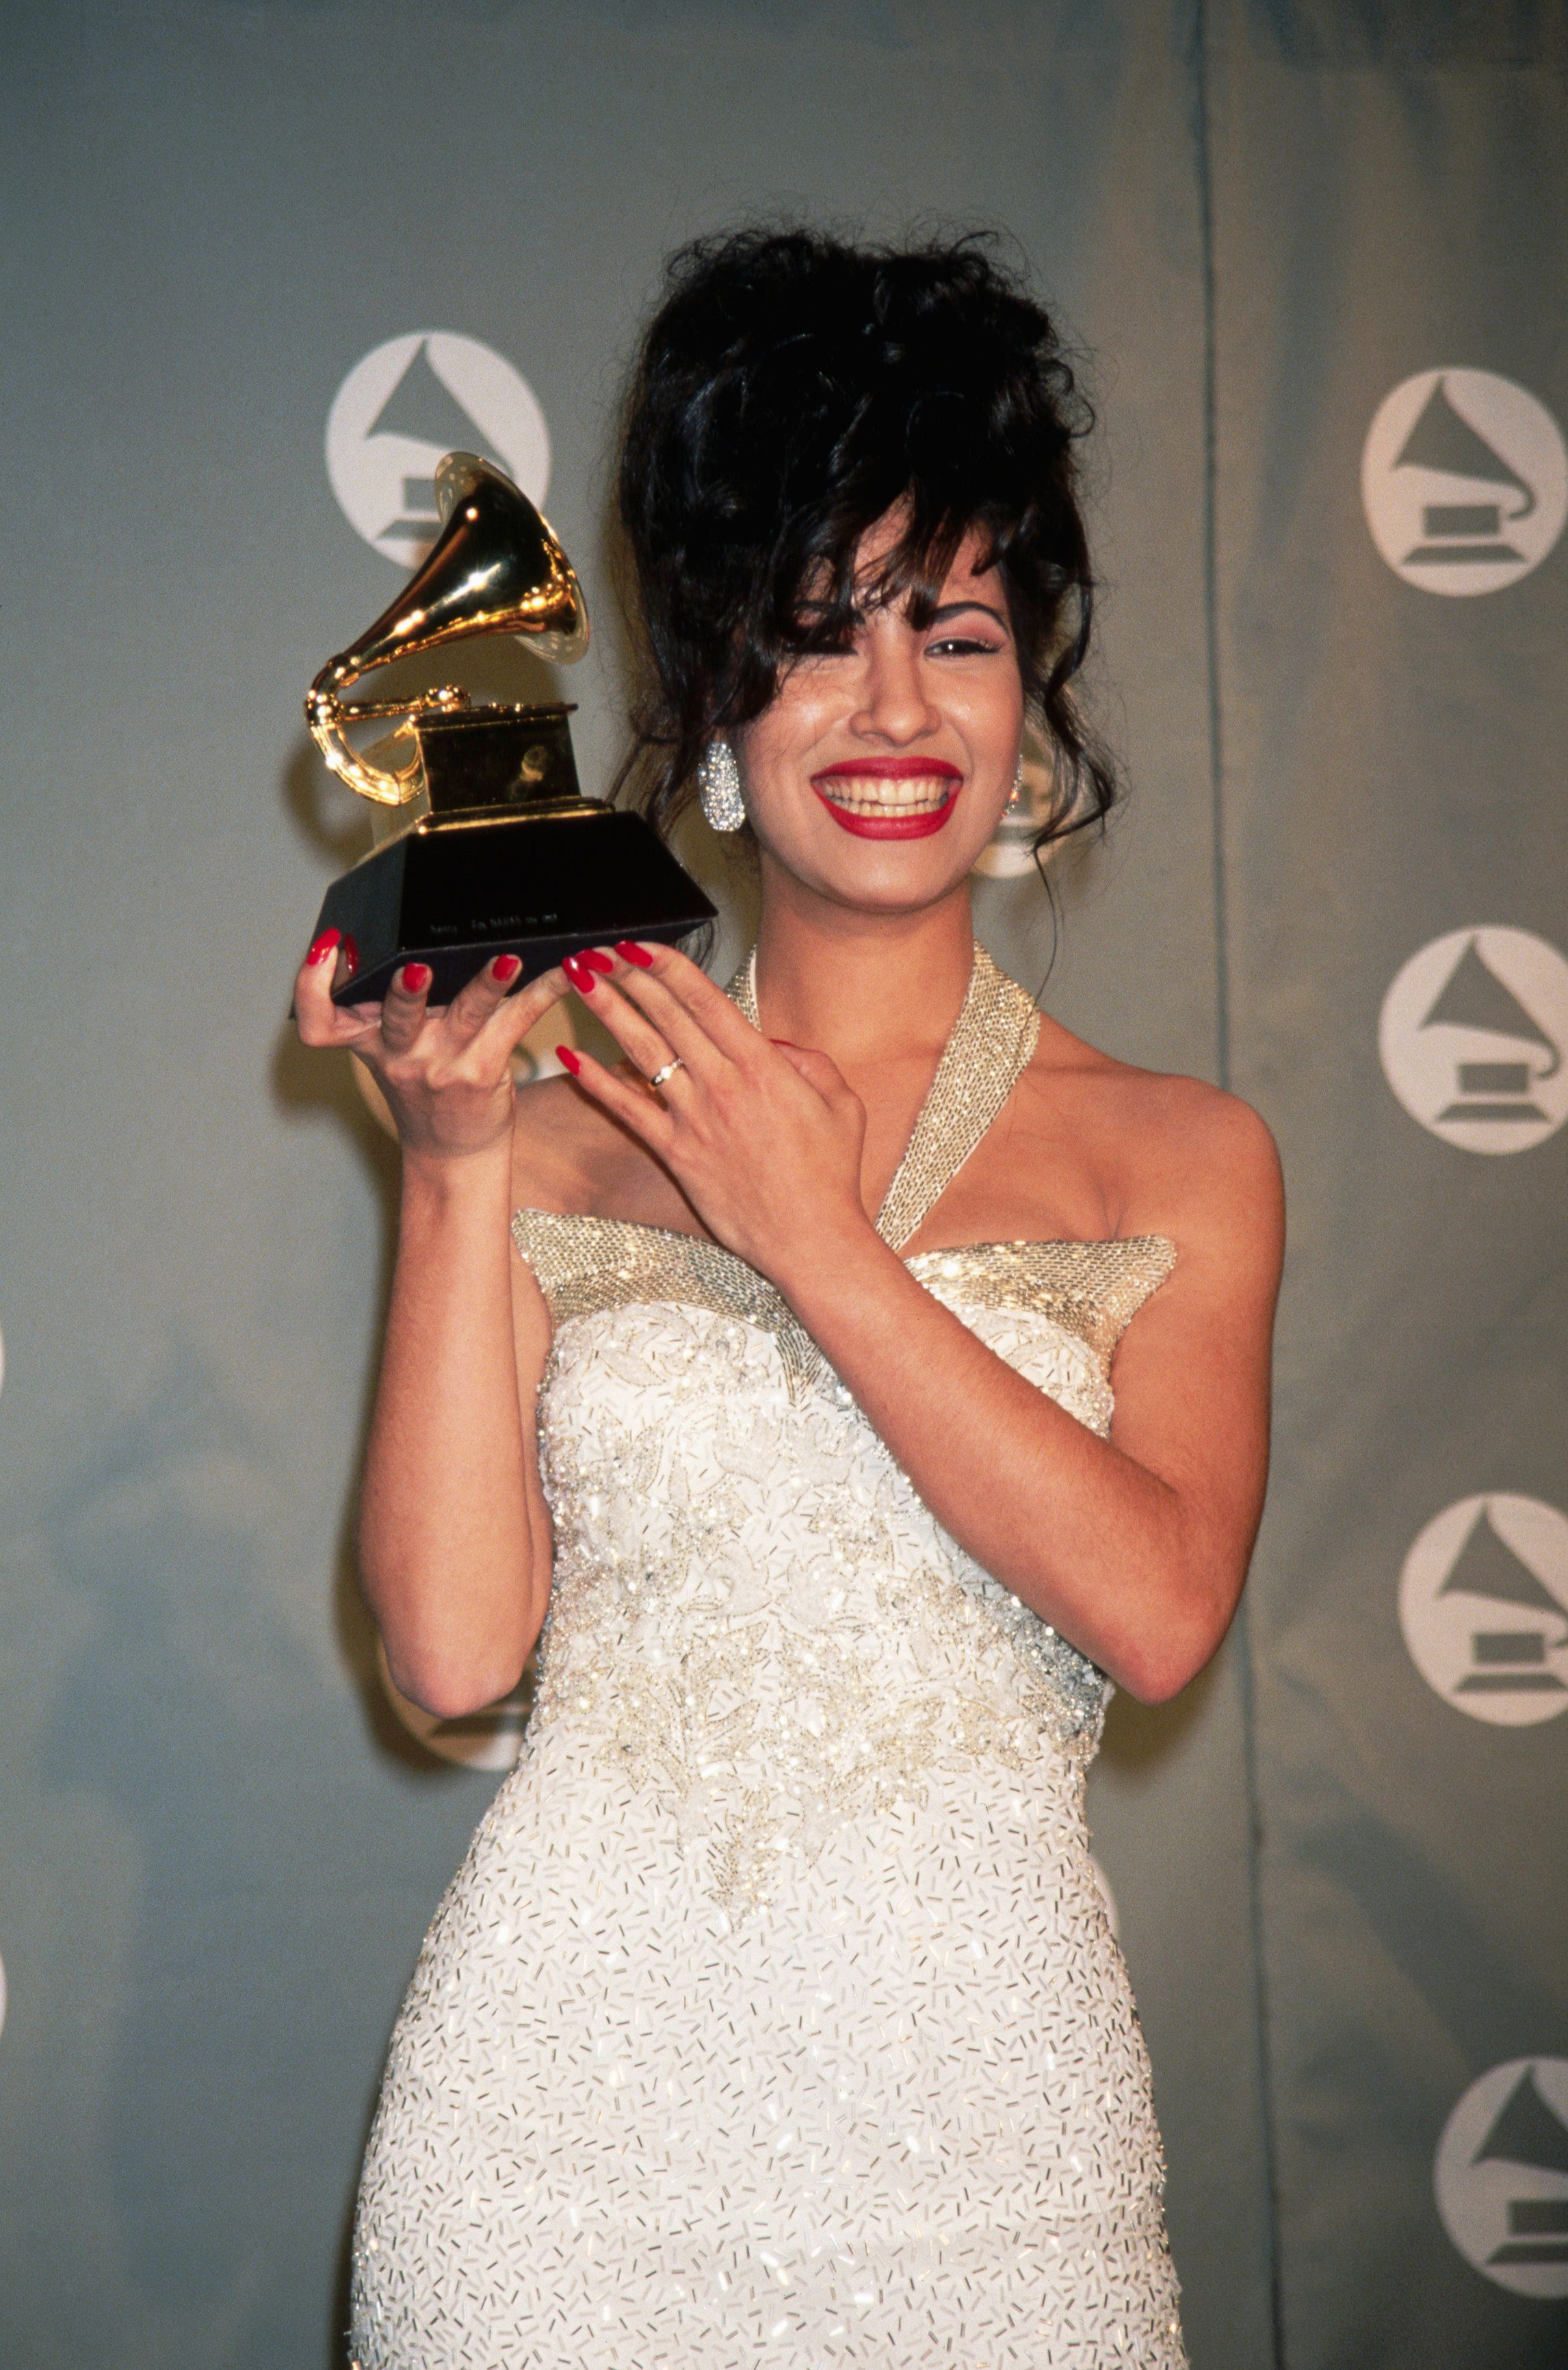 (Original Caption) : Selena:   (Photo by Mitchell Gerber/Corbis/VCG via Getty Images)